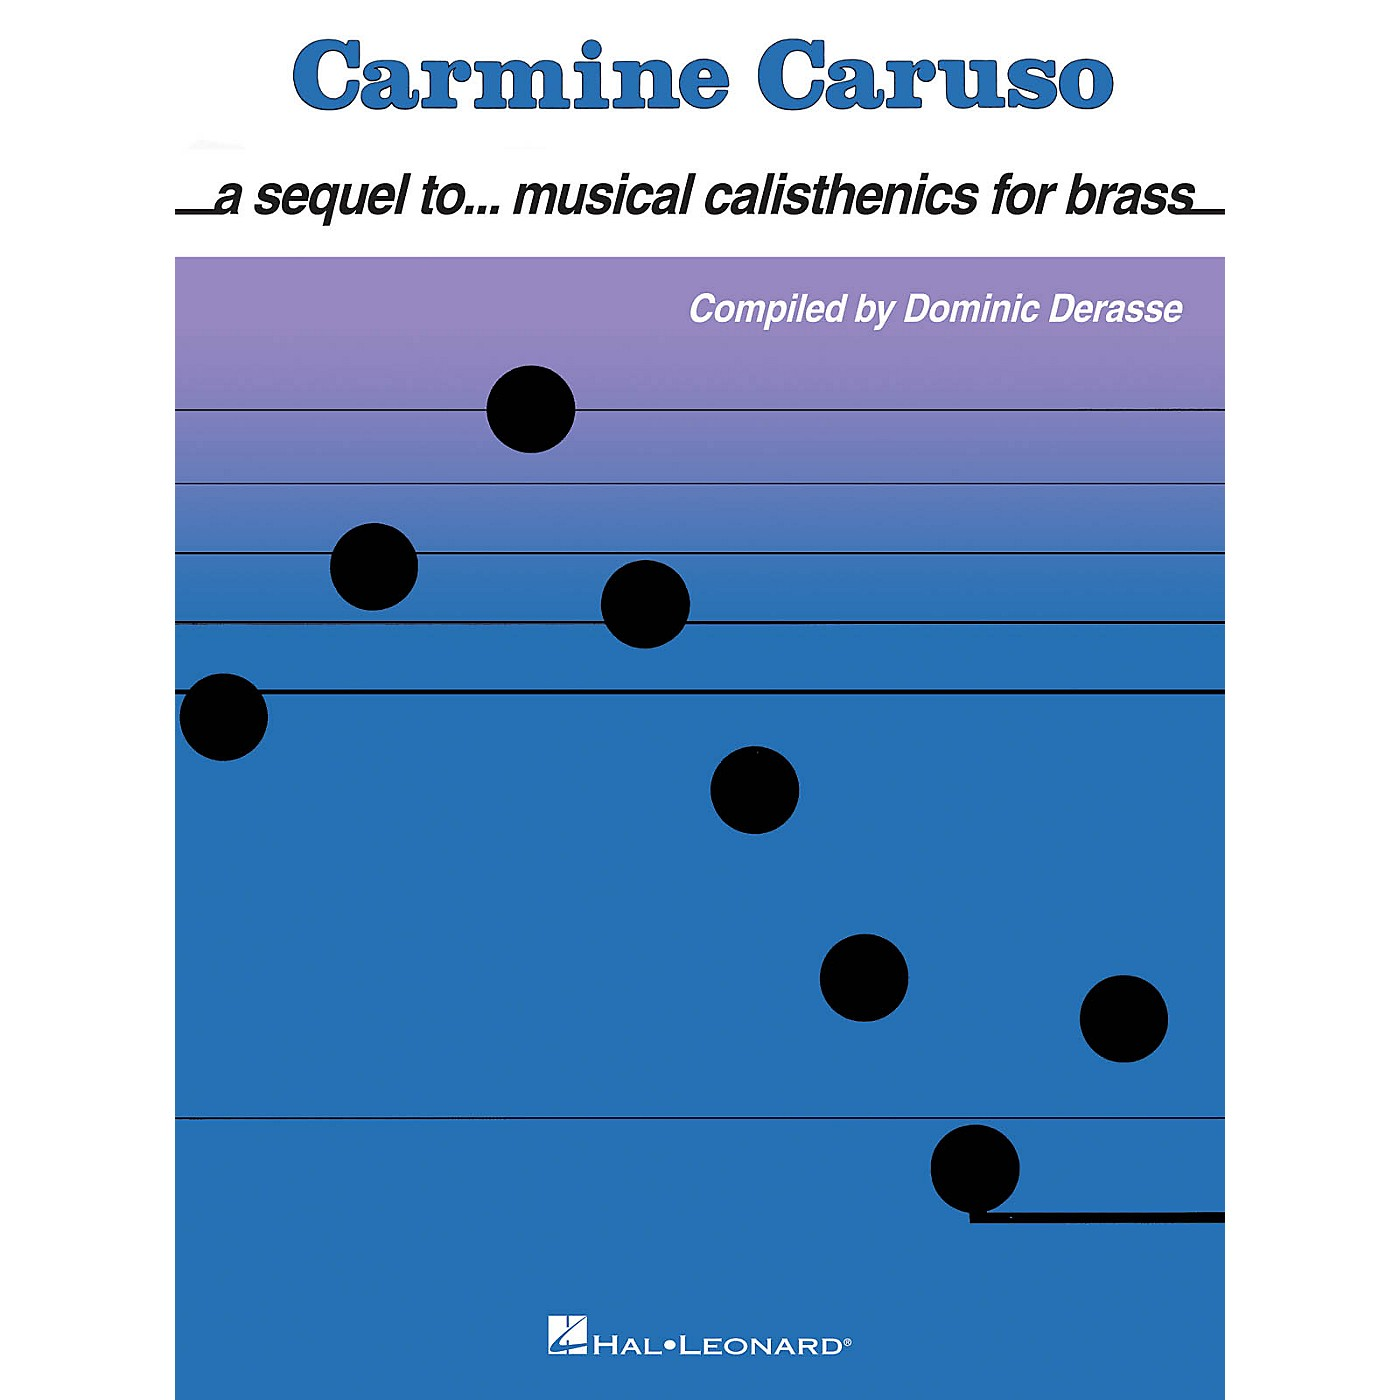 Hal Leonard Carmine Caruso - A Sequel to Musical Calisthenics for Brass Instructional Book by Carmine Caruso thumbnail